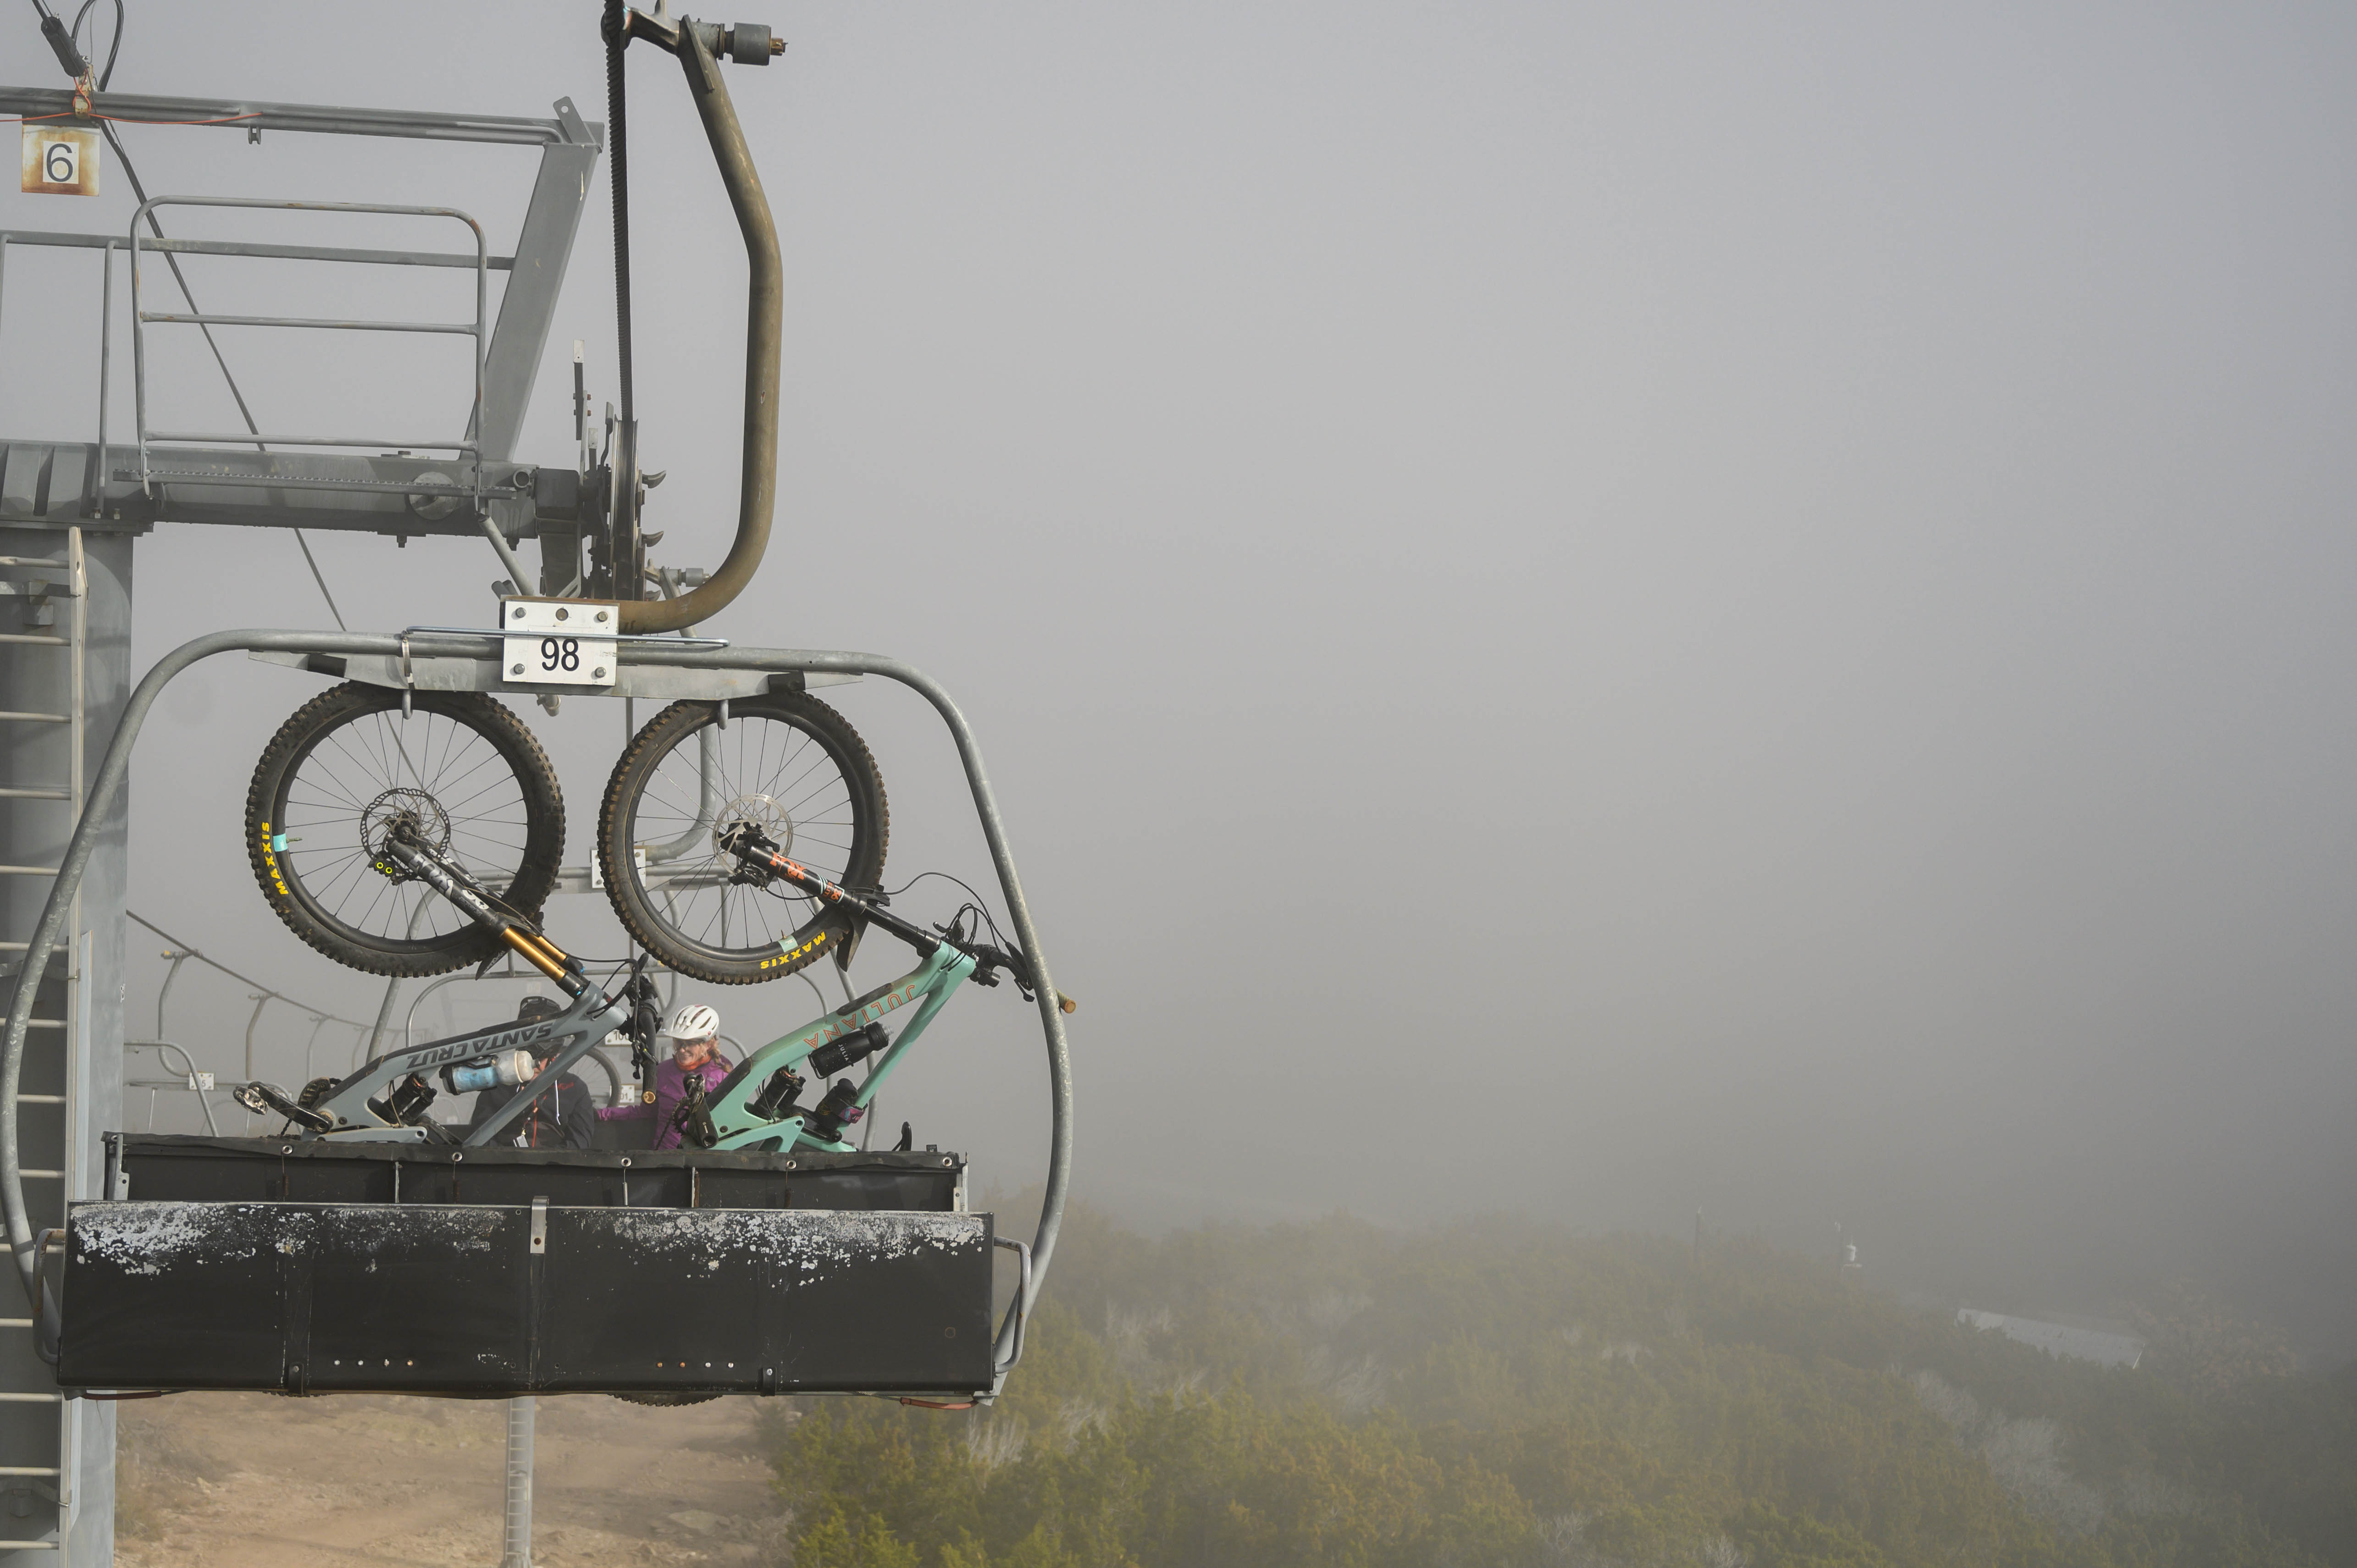 Morning mist and low-hanging clouds are a common occurrence on Hillcountry, unlike mountain bikes hanging from chairlifts.